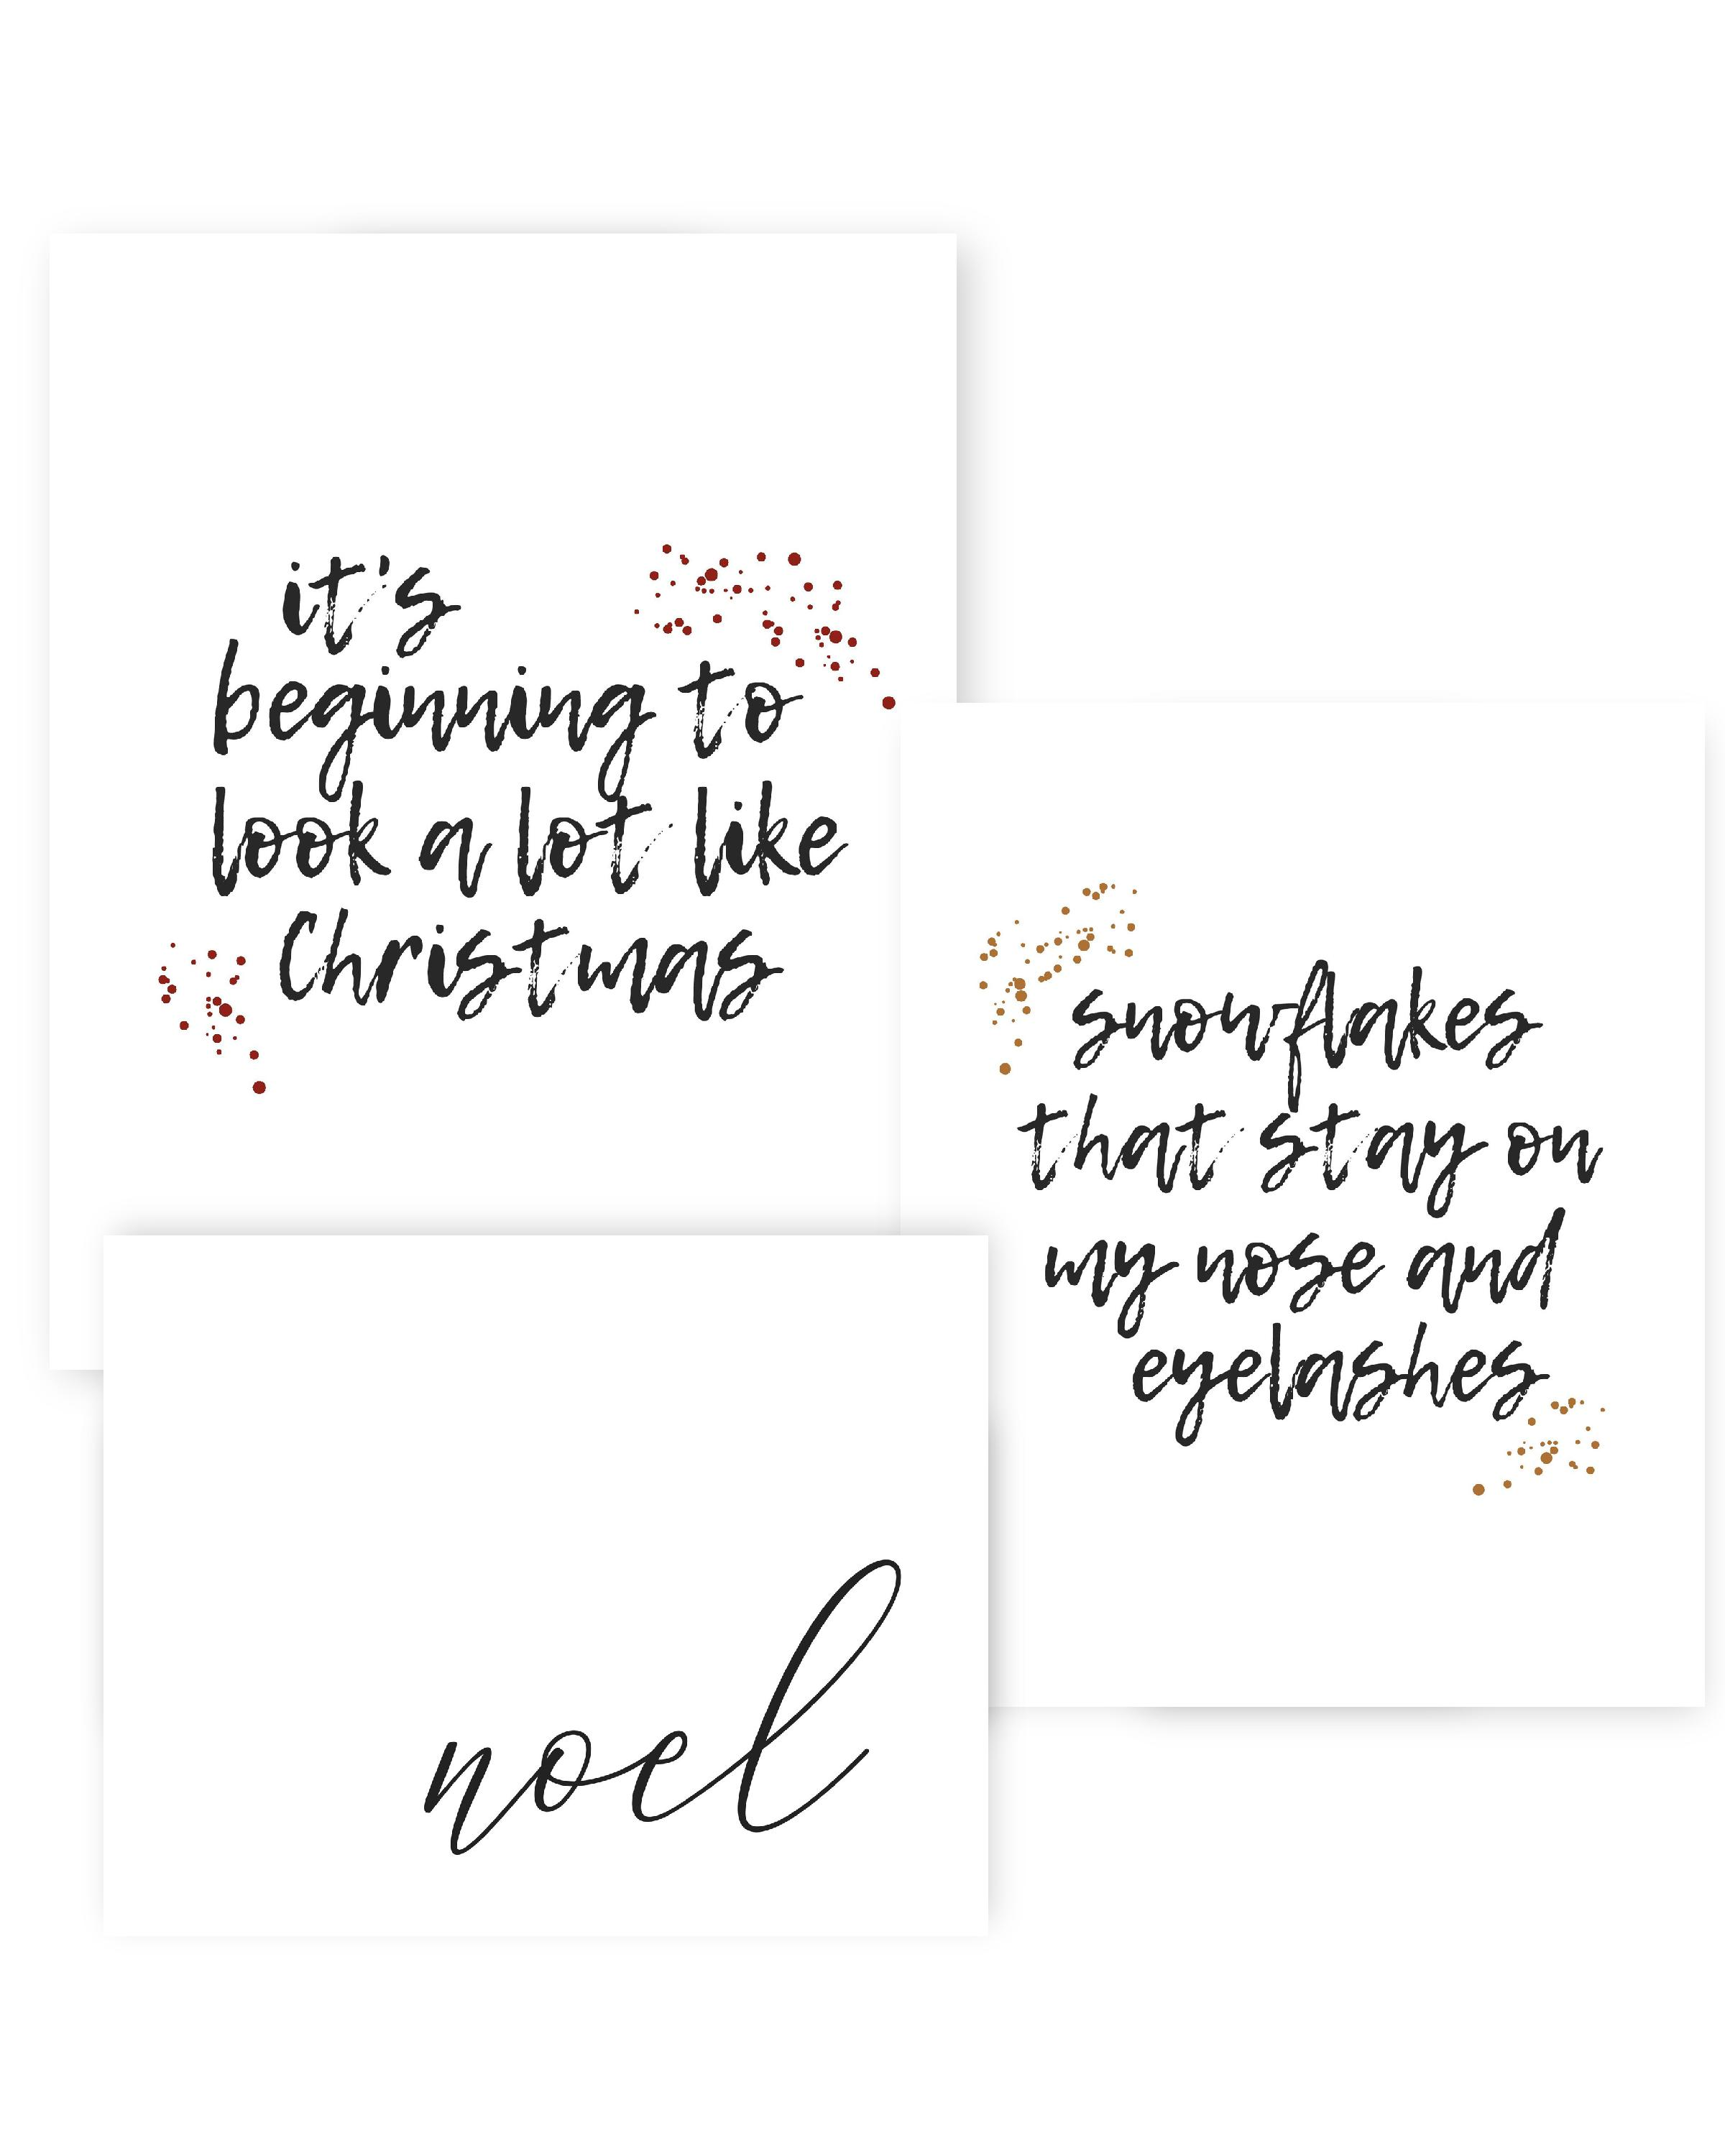 3 free holiday prints from Refined Design - download and print my free Christmas artwork. Noel, It's beginning to look a lot like Christmas, and Snowflakes that stay on my nose and eyelashes. Freebie Christmas decor for your home.